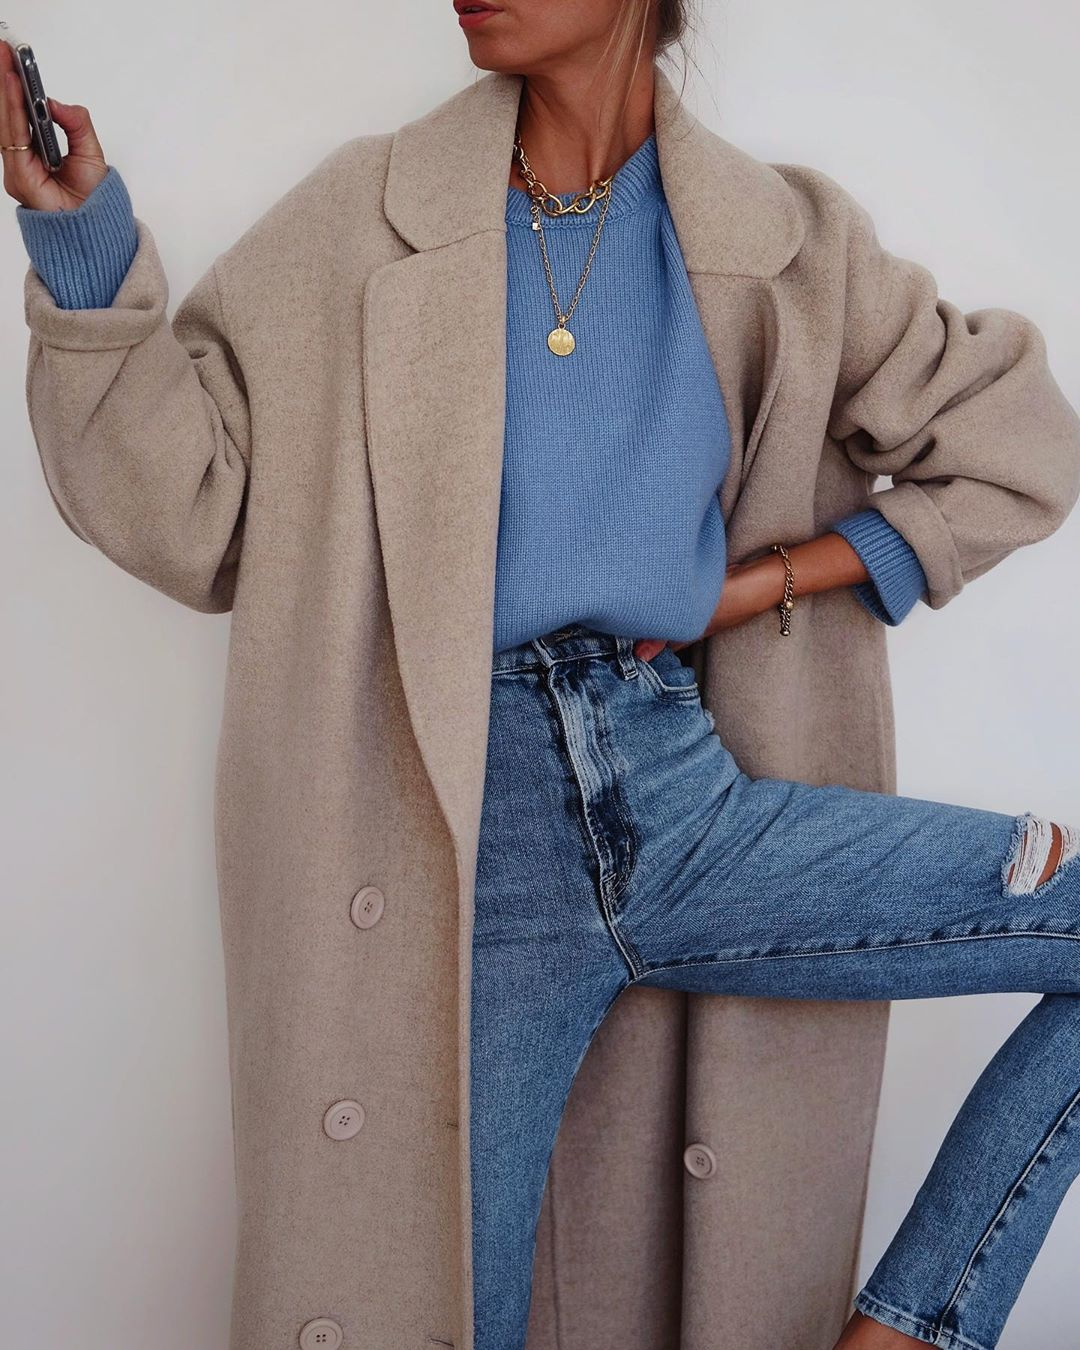 Casual-Cool Instagram Outfit — Andi Csinger in a beige coat, blue sweater, chain and coin pendant necklaces, and high-waisted jeans